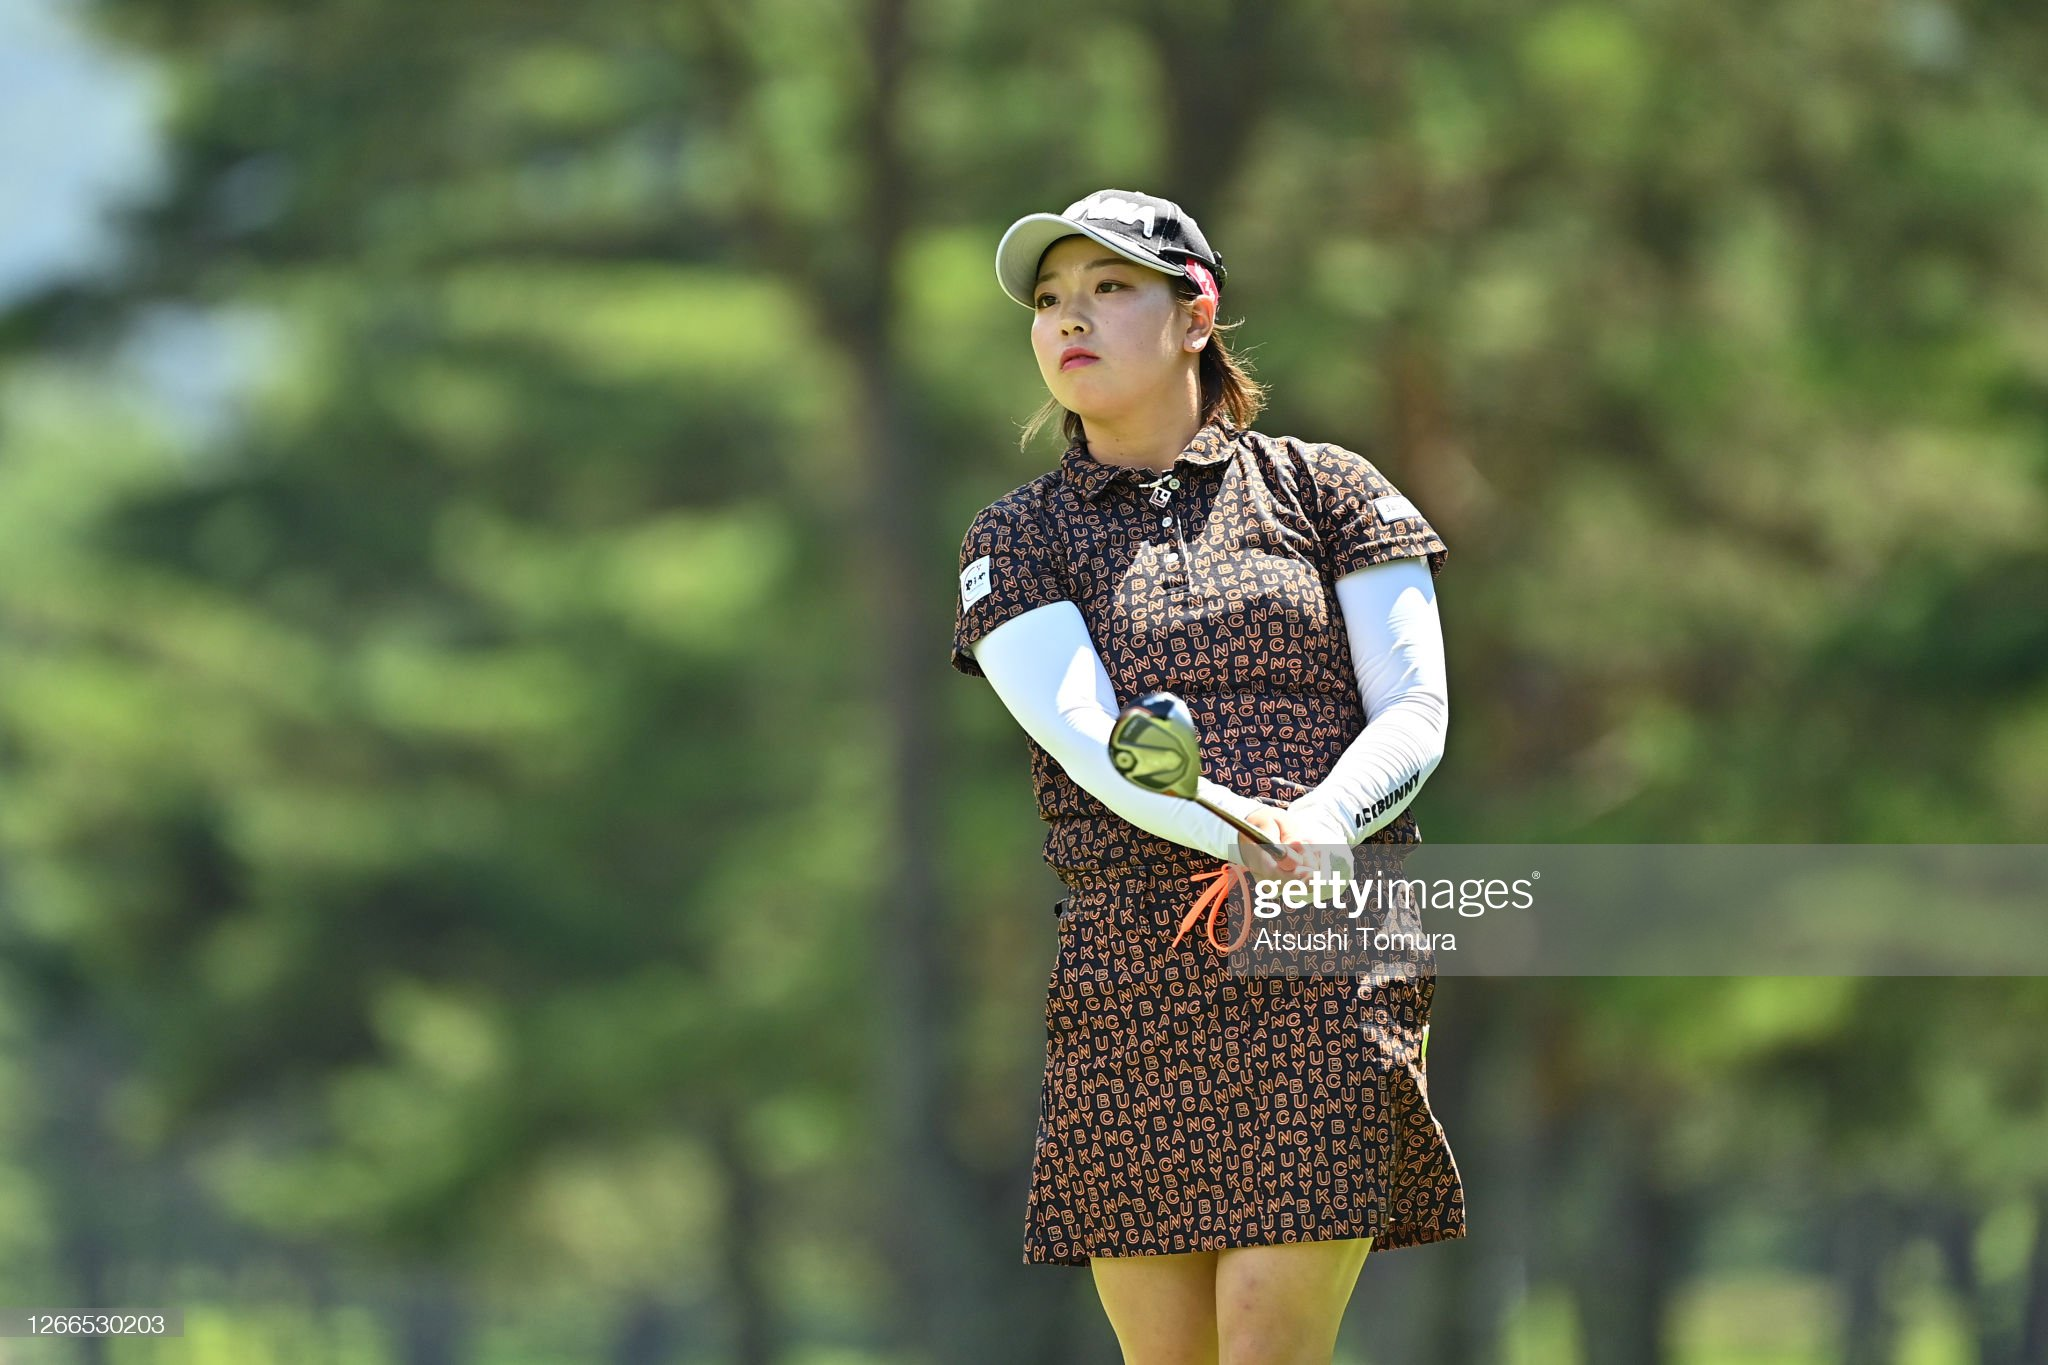 https://media.gettyimages.com/photos/miyu-goto-of-japan-hits-her-second-shot-on-the-4th-hole-during-the-picture-id1266530203?s=2048x2048